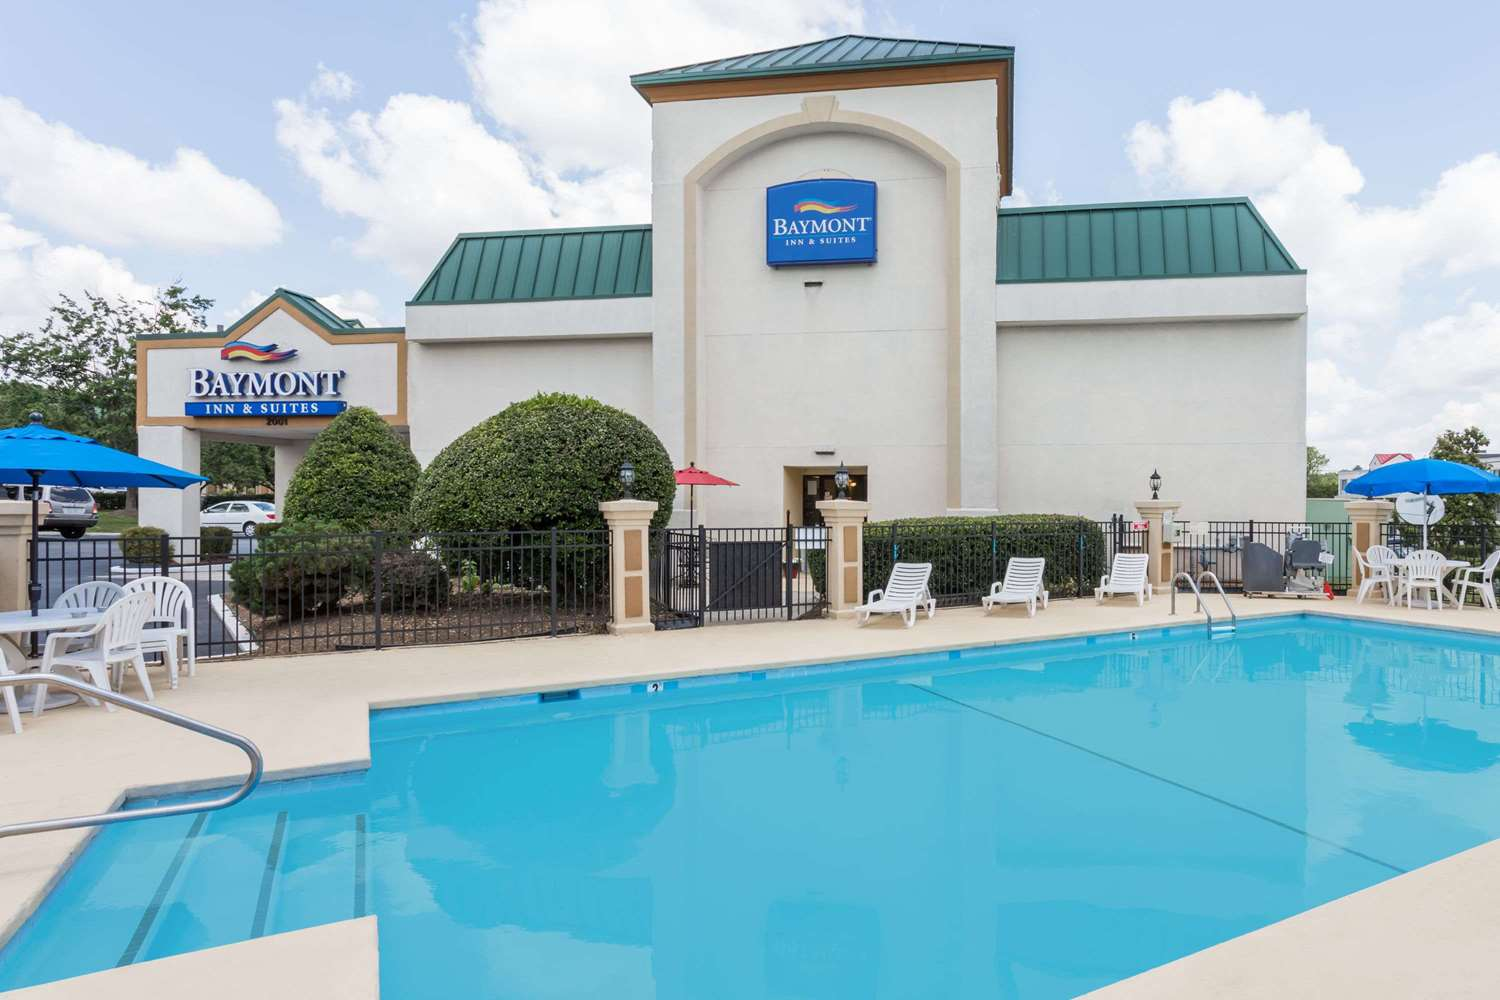 Pool - Baymont Inn & Suites Greensboro